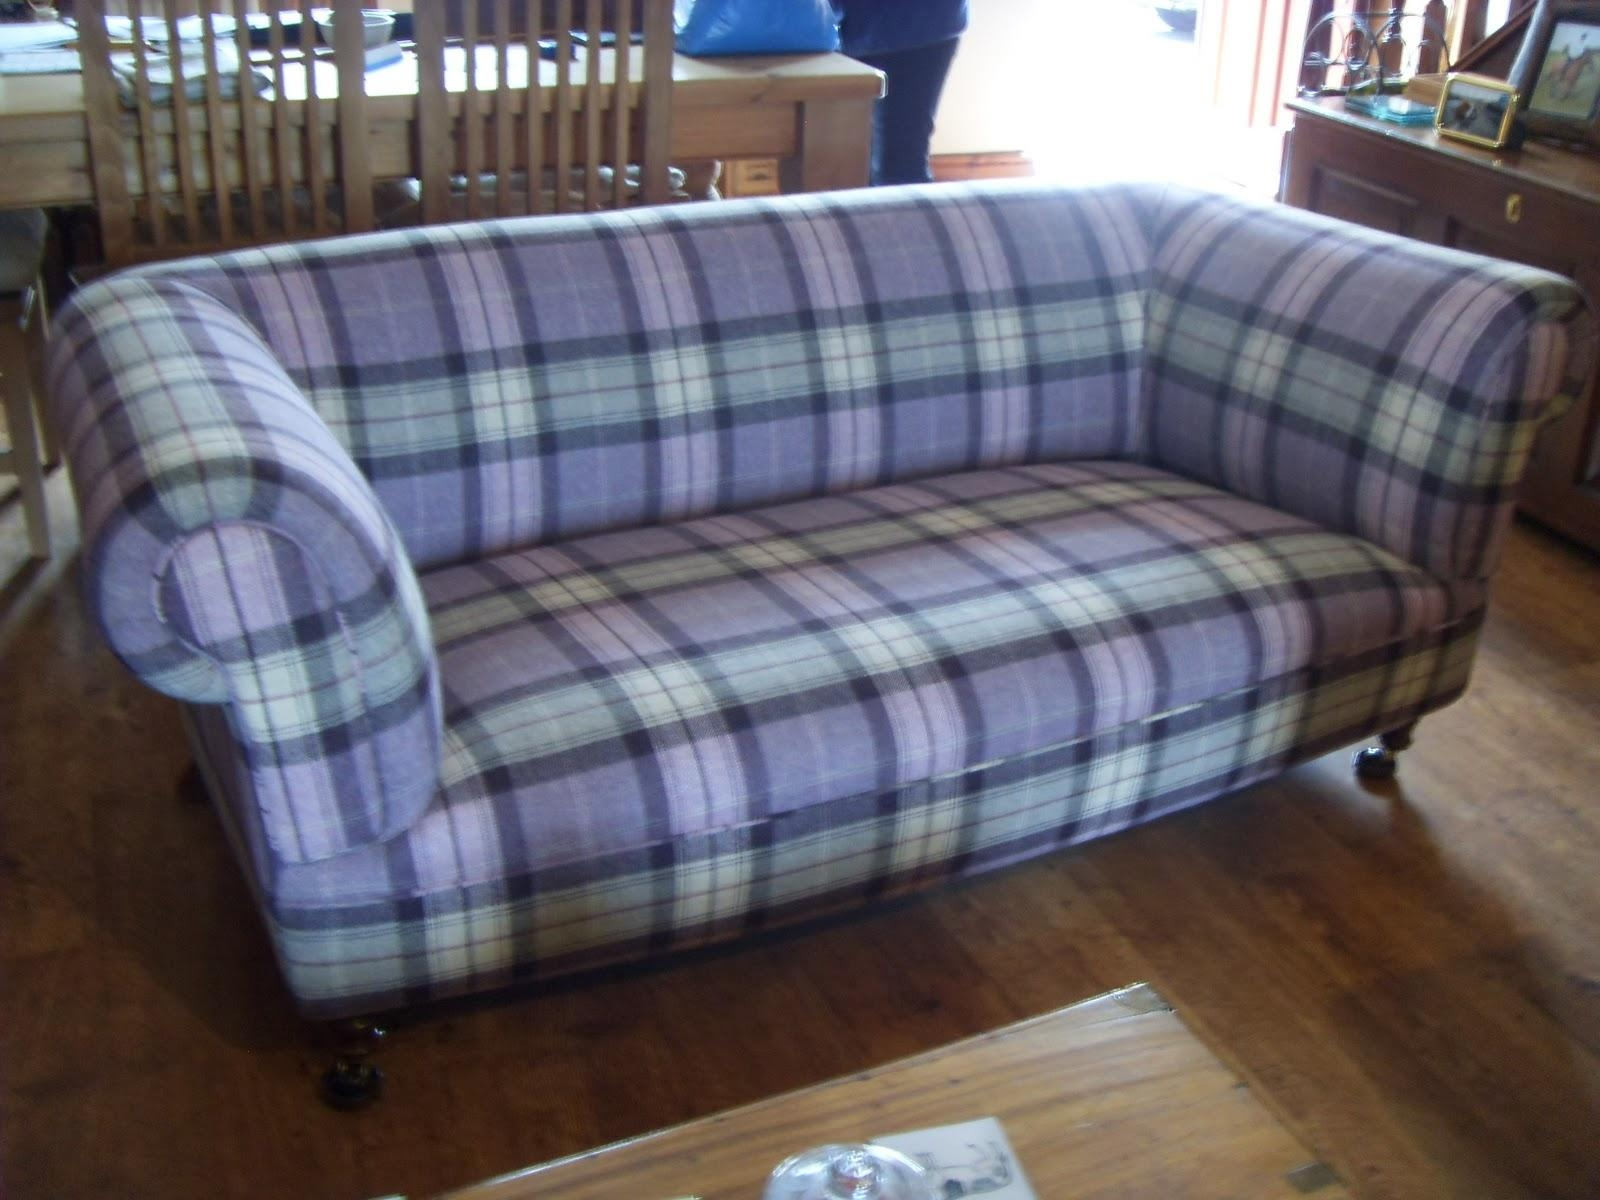 Plaid Couch | Home Decor & Furniture In Blue Plaid Sofas (View 7 of 20)